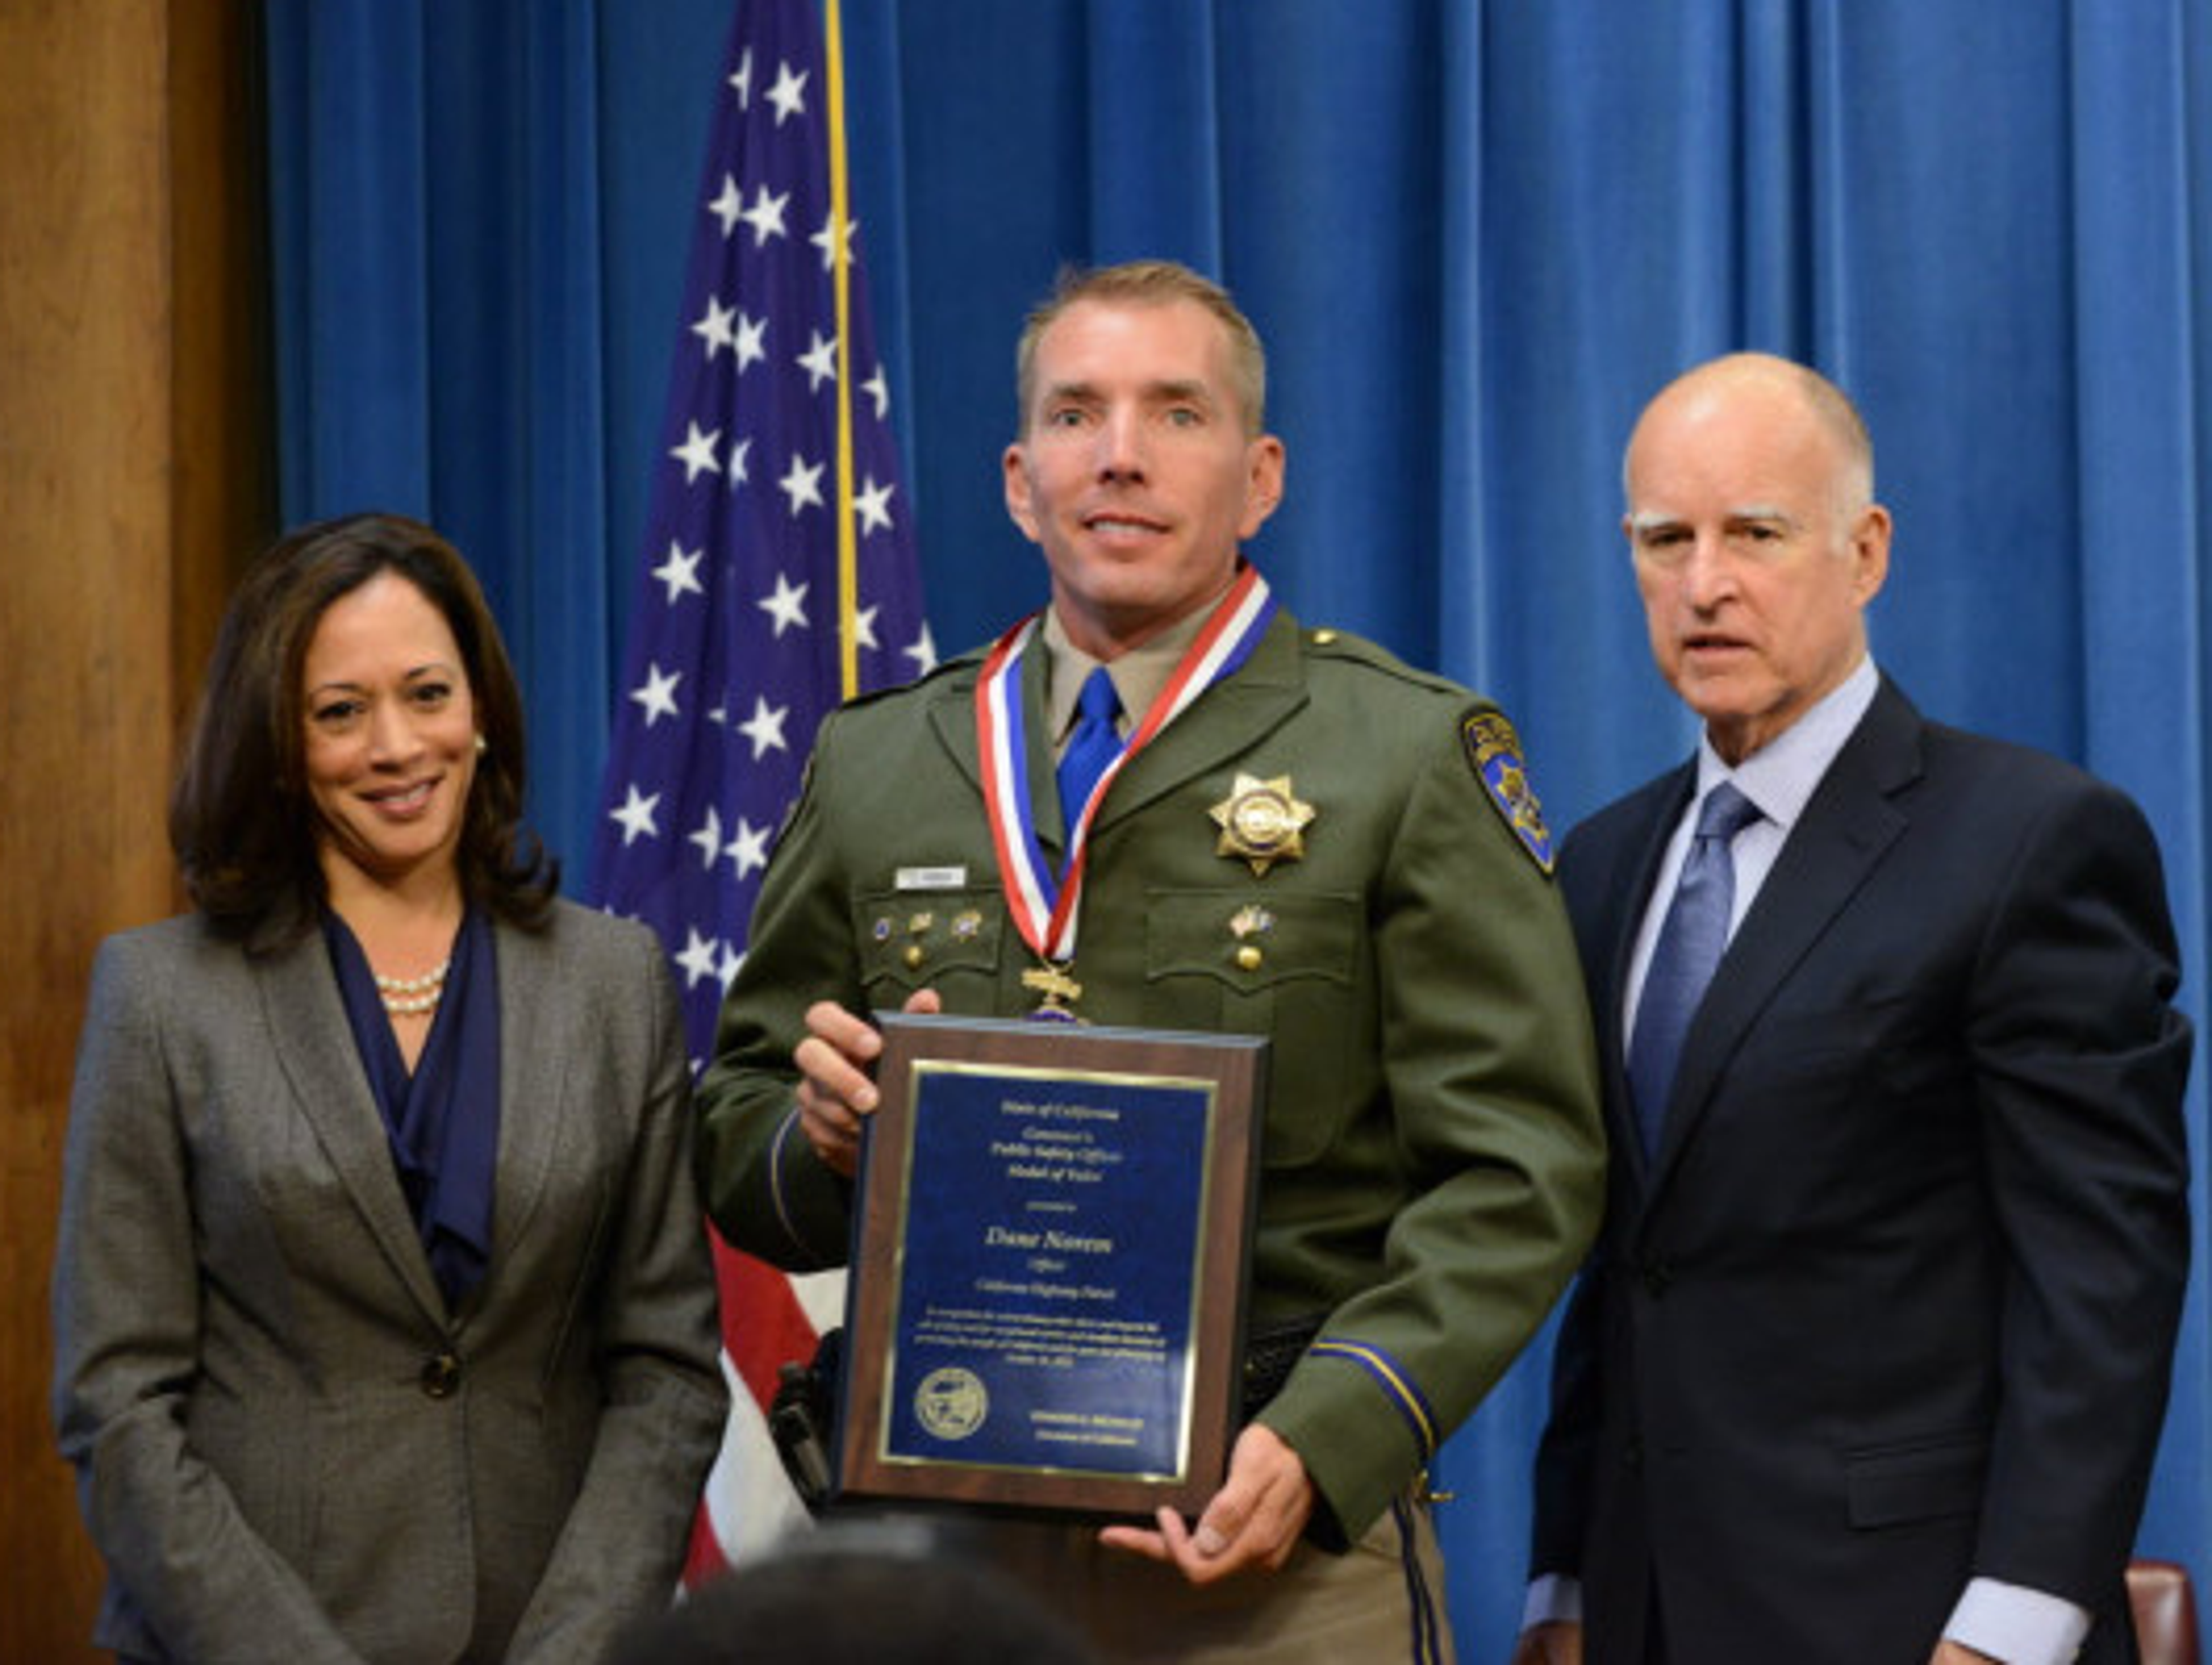 Dane Norem recieves a California Medal of Valor Award